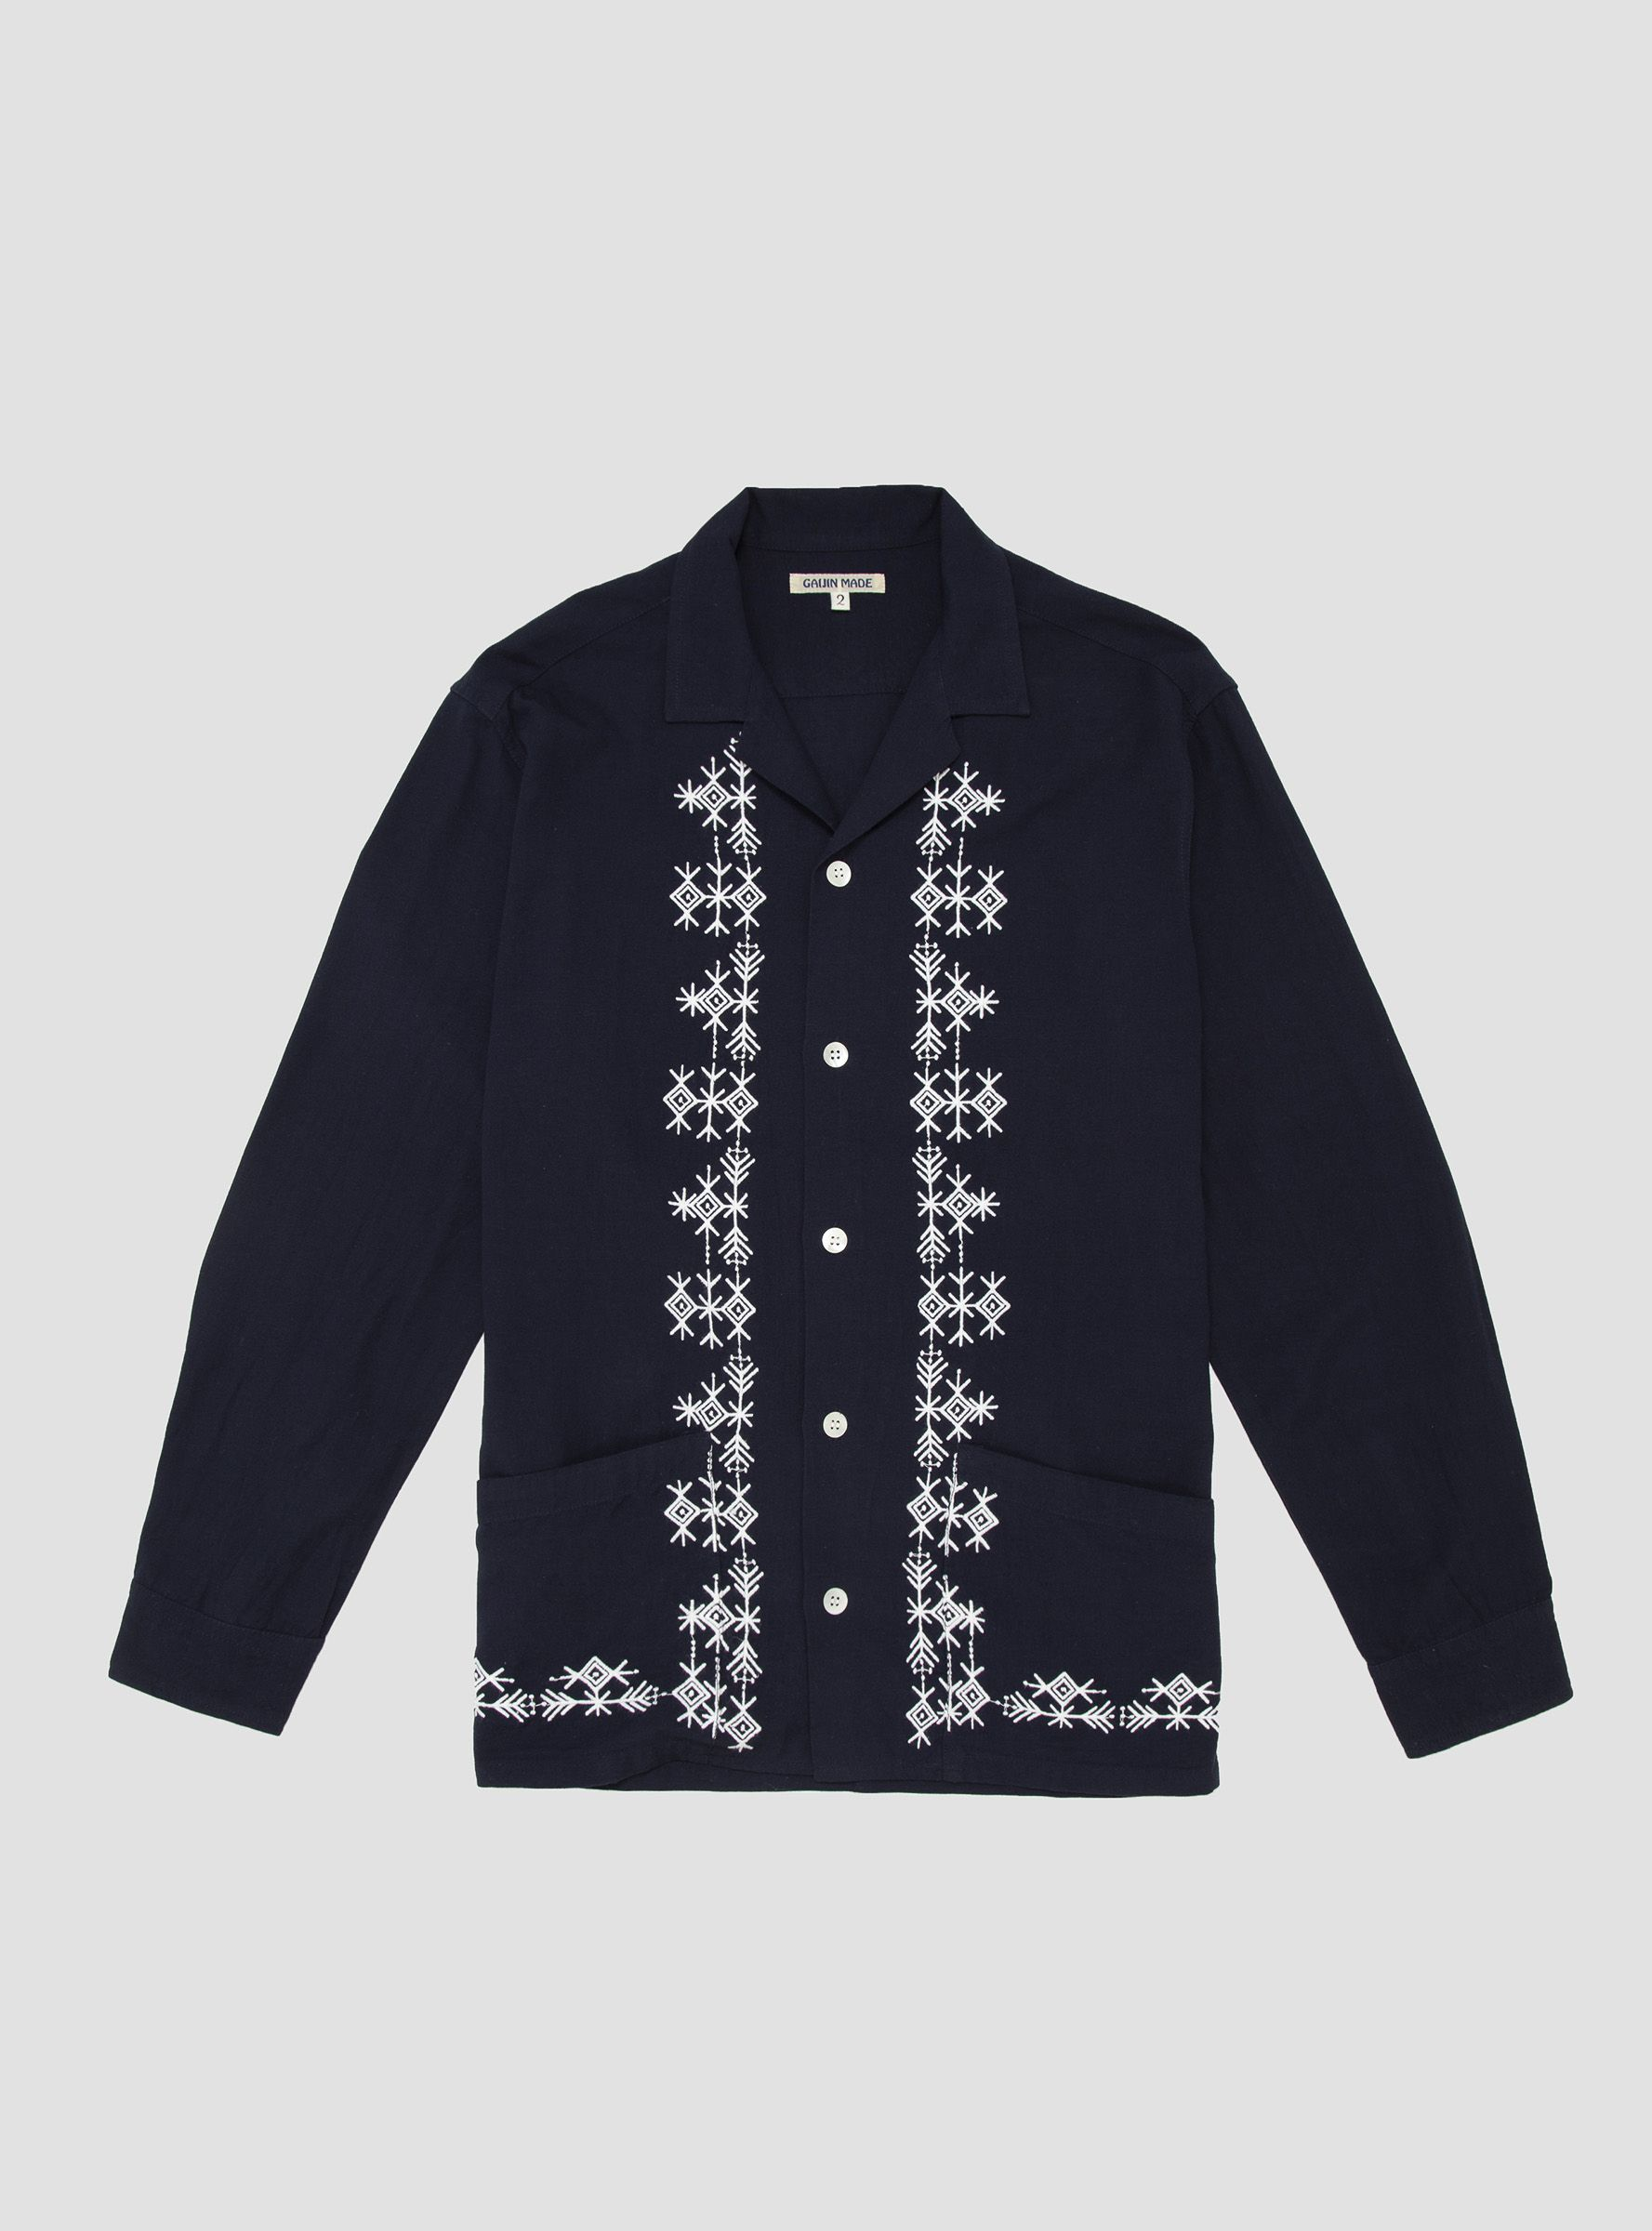 Gaijin Made cotton shirt - £215 - Superb for a cooler clime, with hand embroidery from Indian artisans, this is a superb shirt for summer at Couverture & The Garbstore